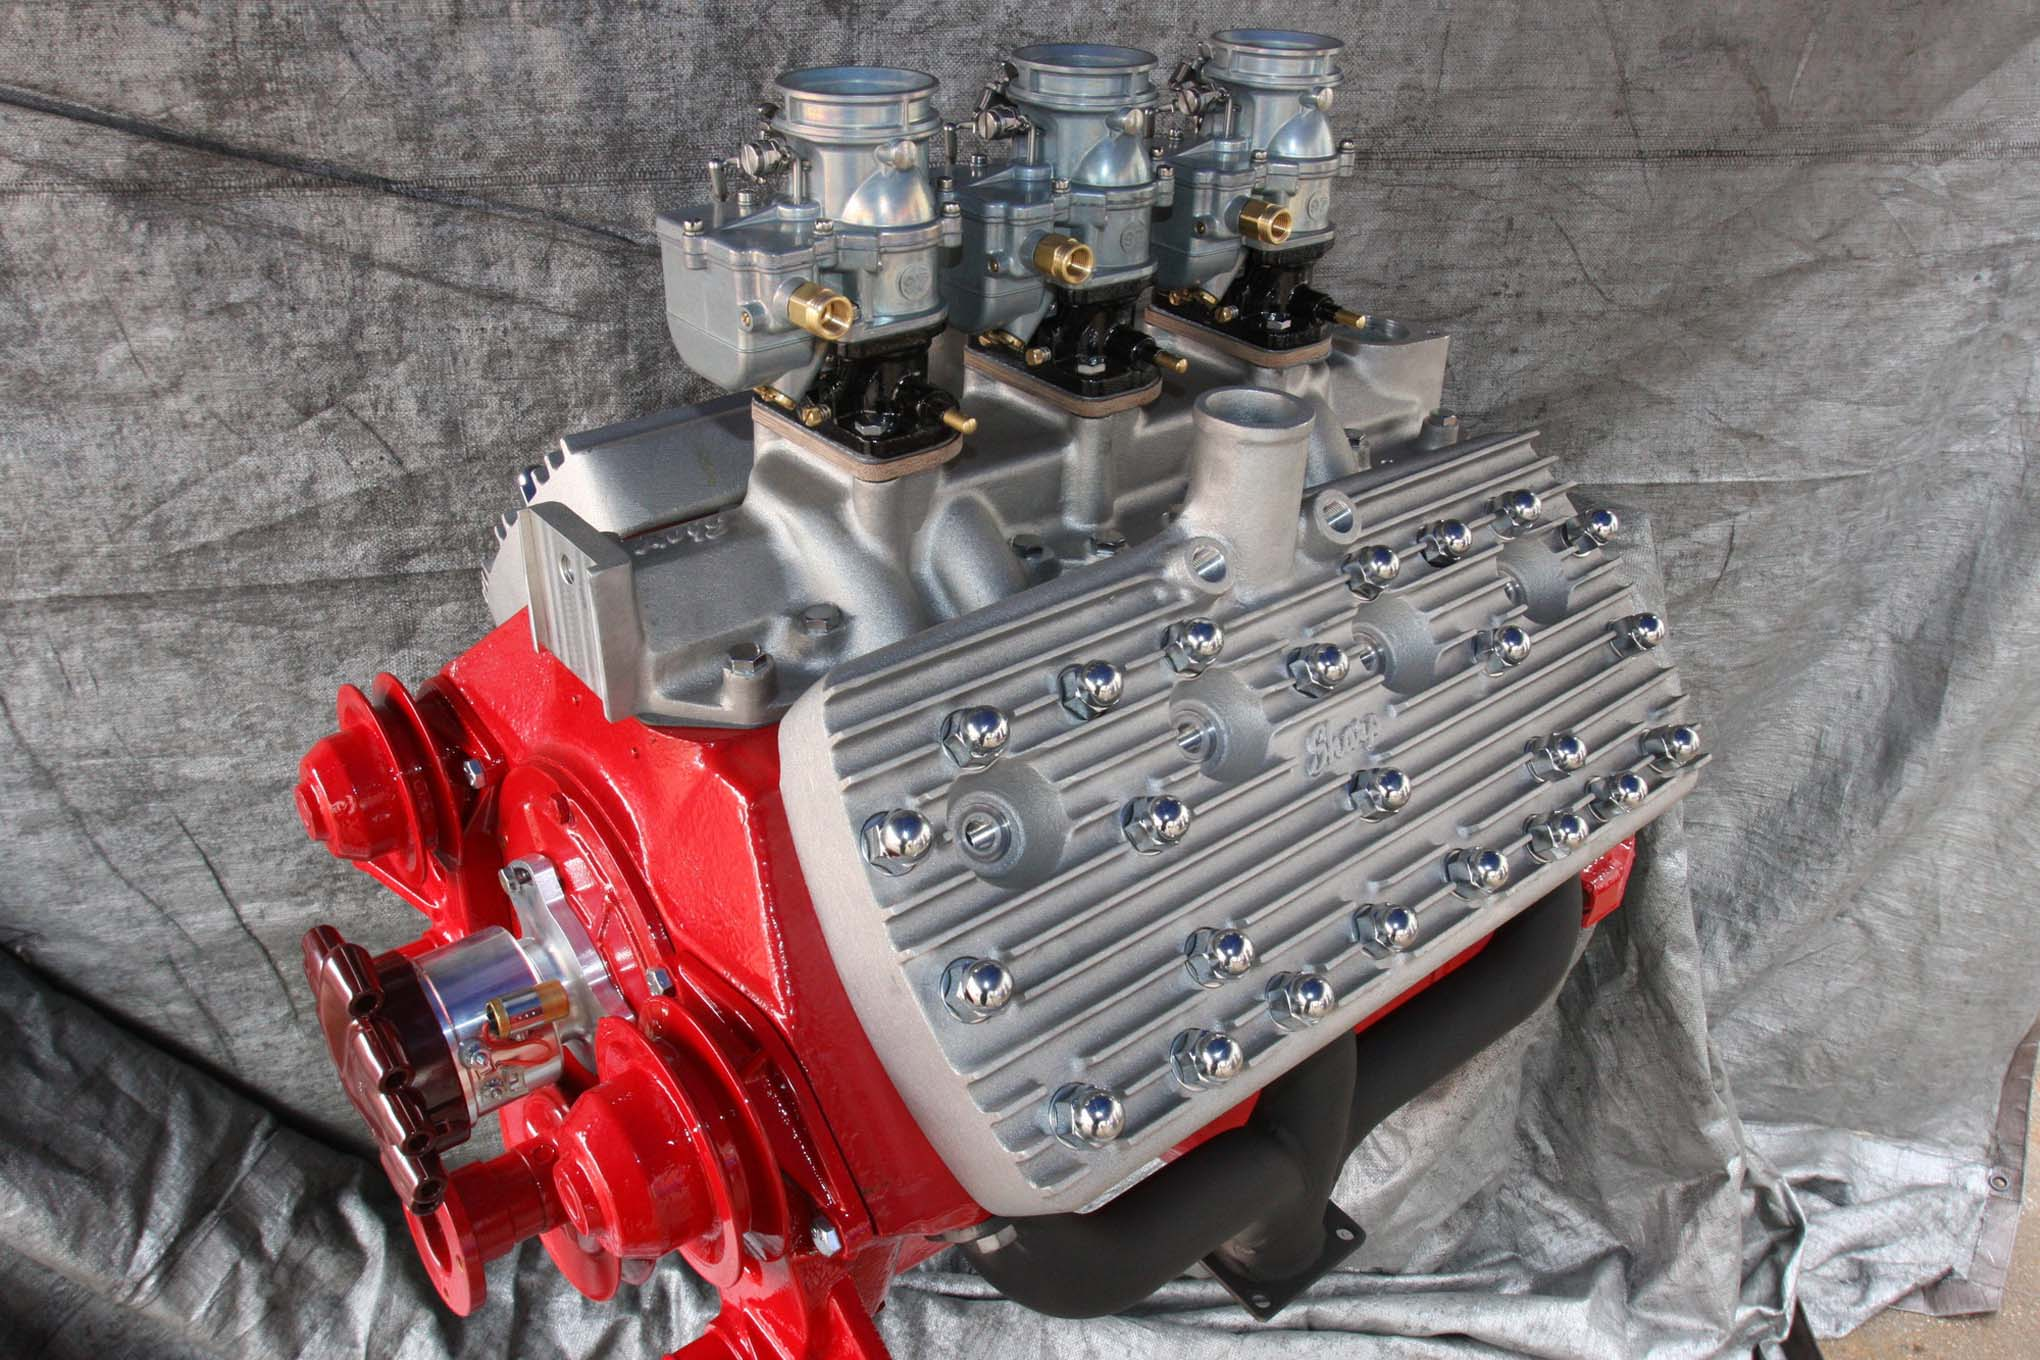 The classic 24 stud 59a ford flathead with a trio of stromberg 97s and aluminum